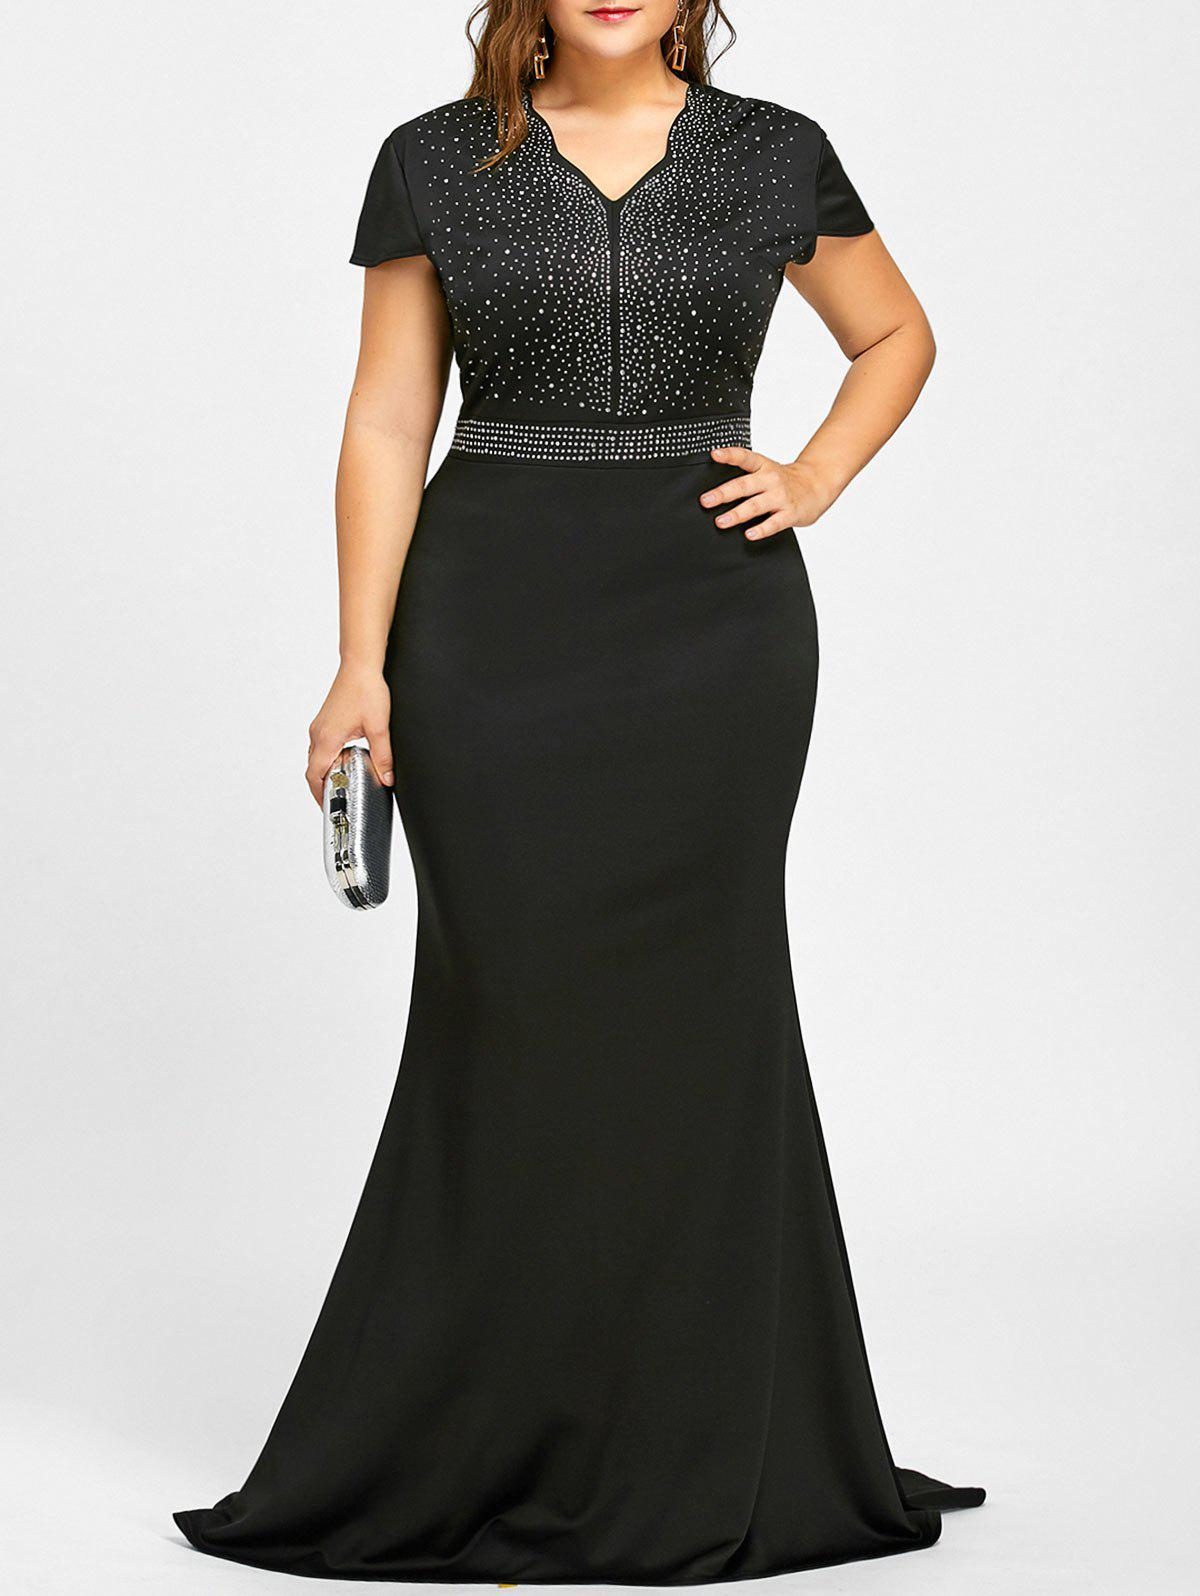 Rhinestone Maxi Plus Size Formal Dress